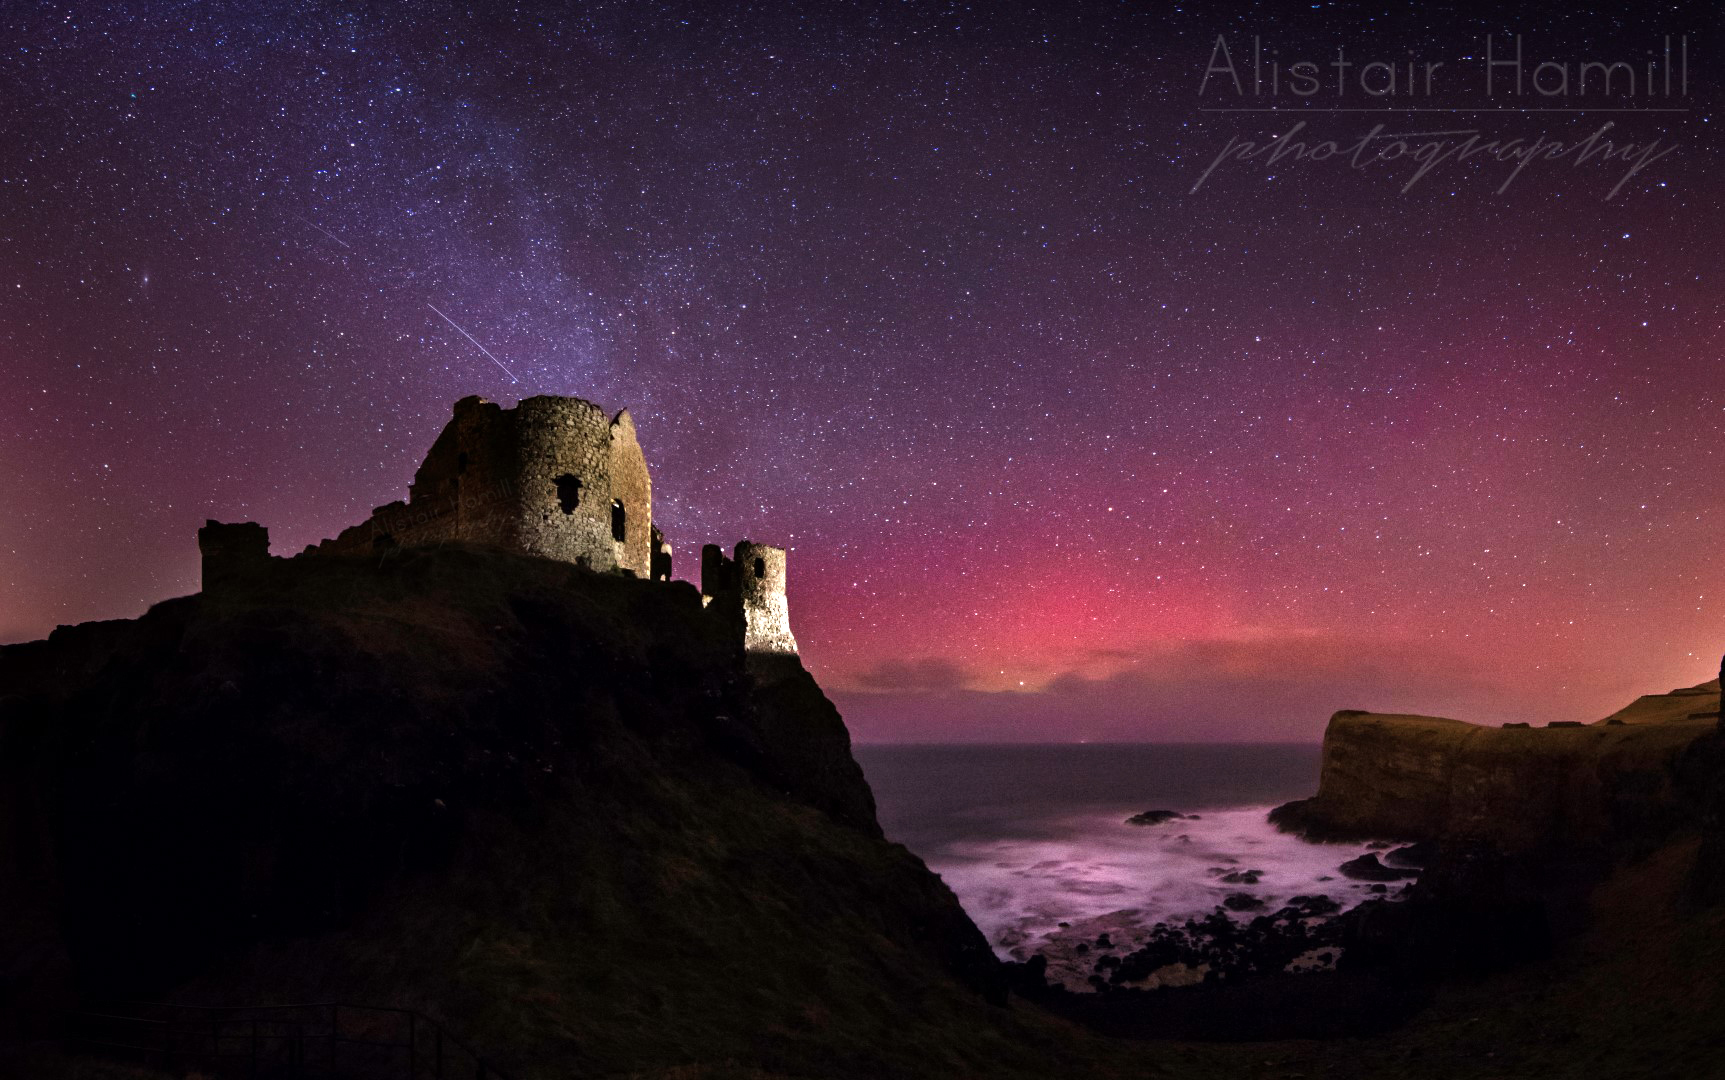 Dunluce aurora down the steps pano 1 (Large) brighter wm.jpg